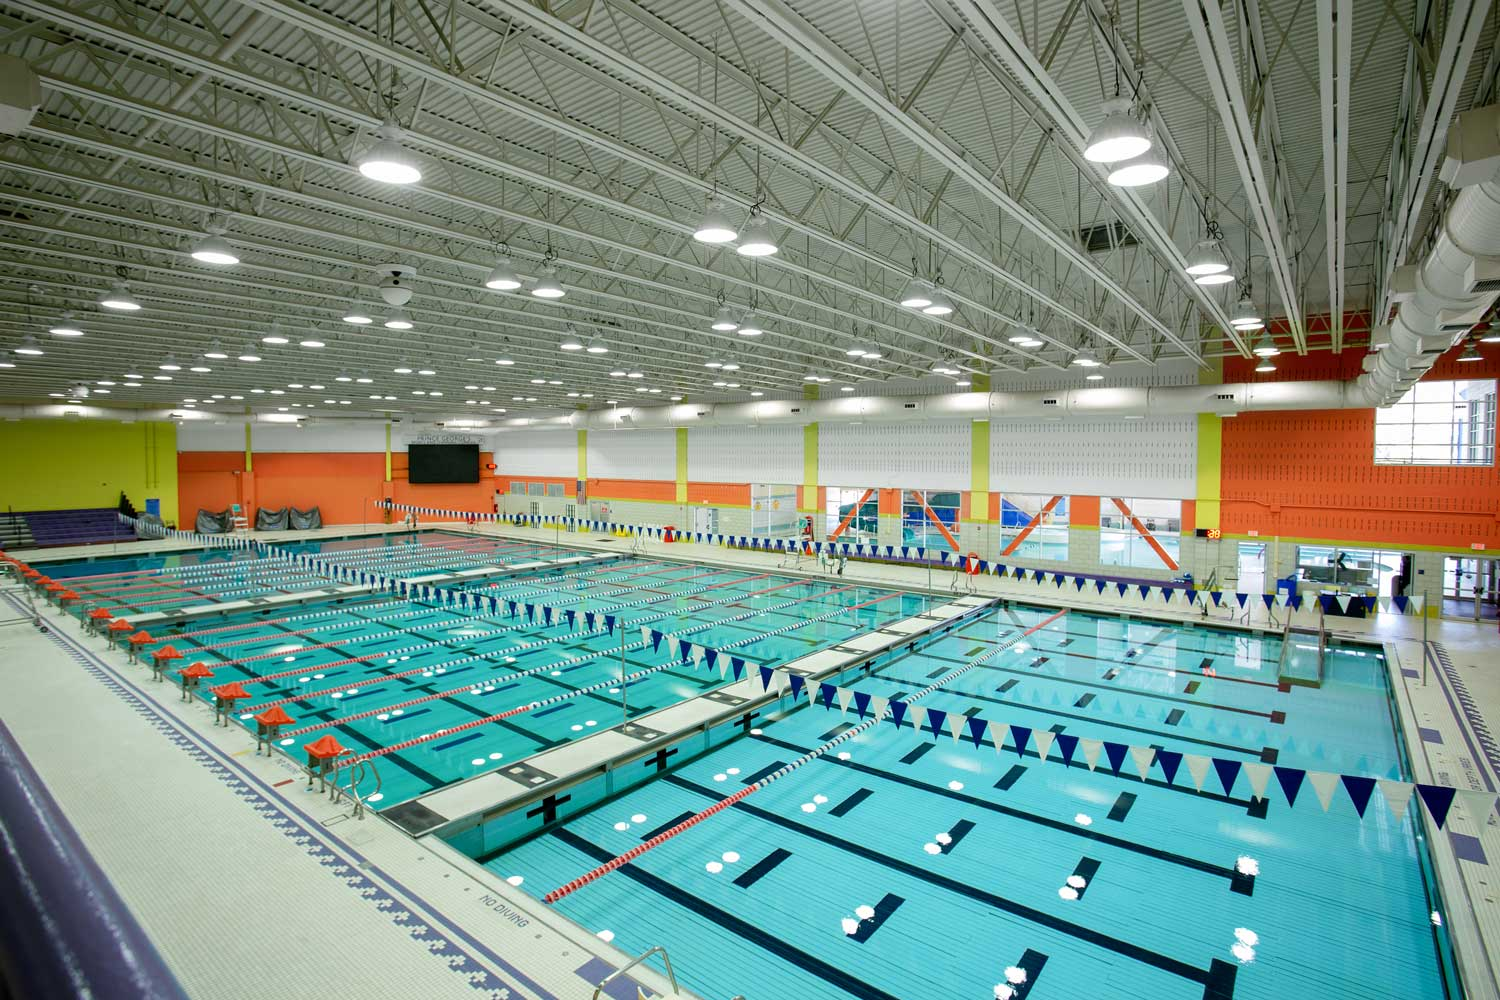 5 minutes to Prince George's Sports & Learning Complex in Landover, MD